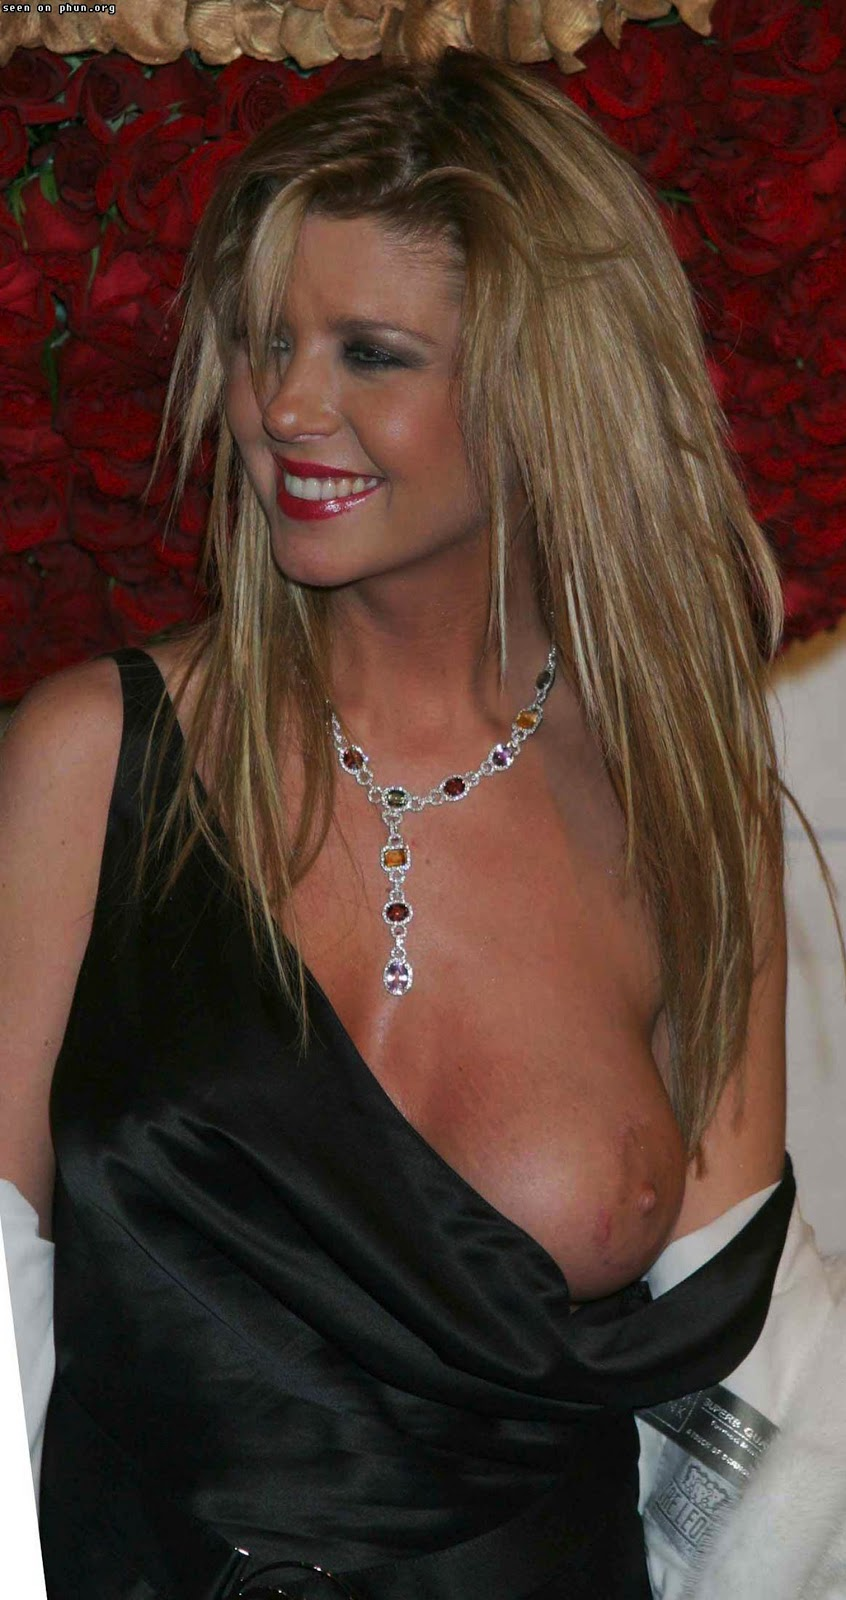 Tara reid naked in the shower necessary words